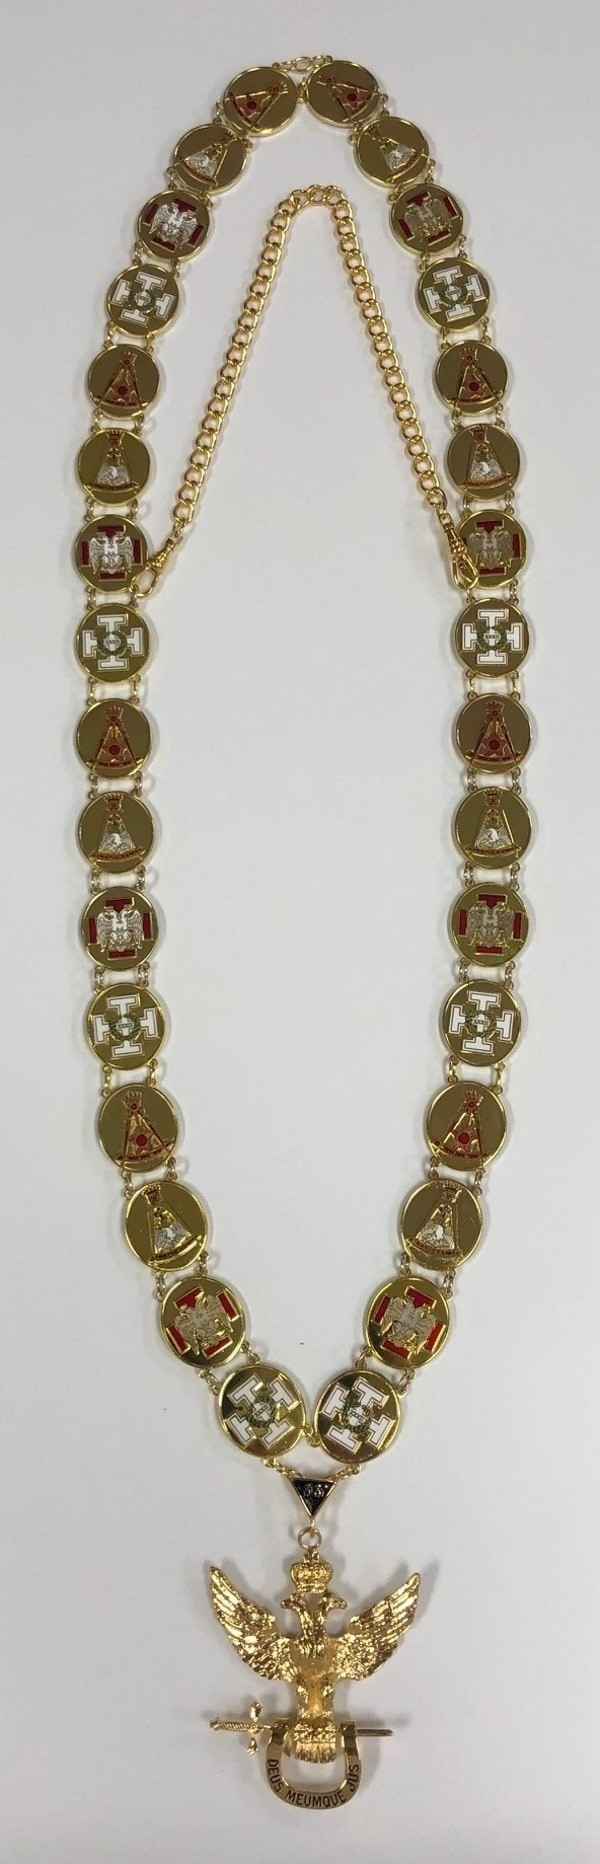 Scottish Rite 33rd Degree Collar New For Sale